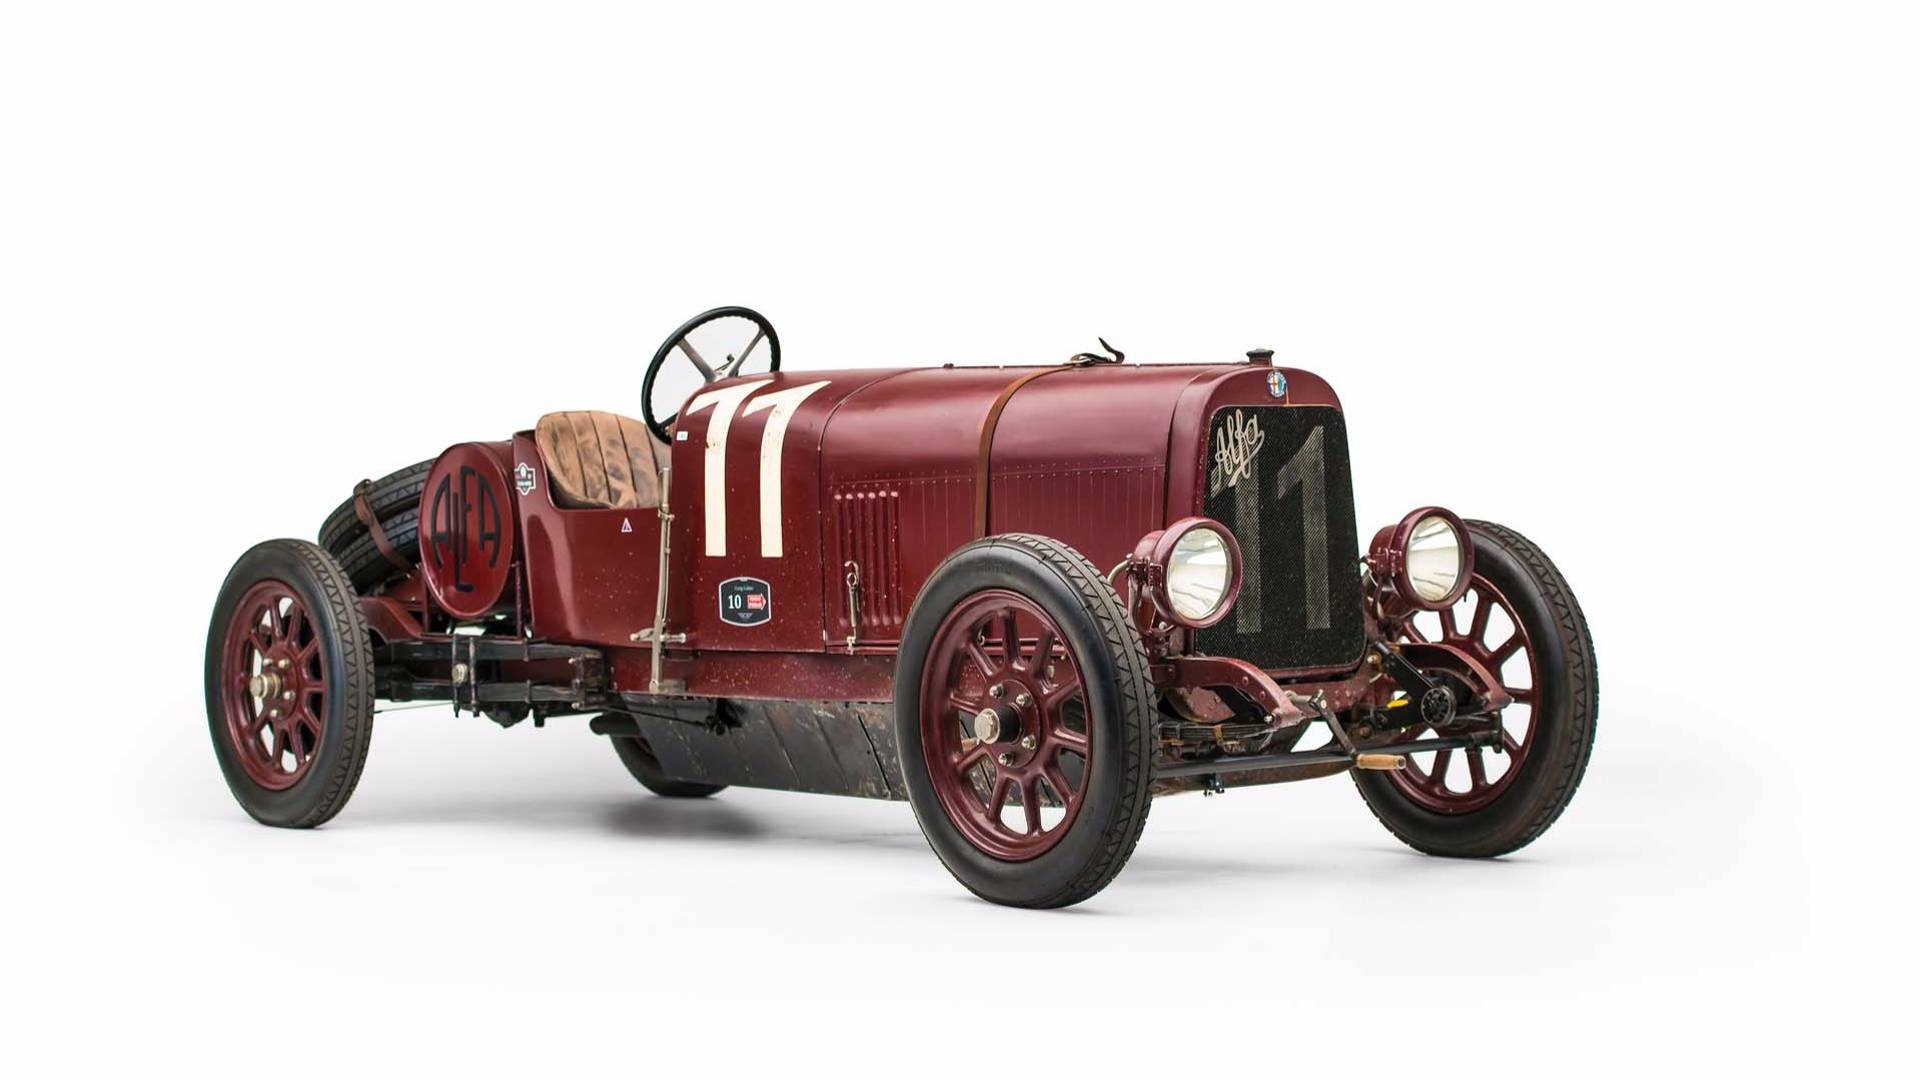 Alfa Romeo G1 1921 in auction (1)